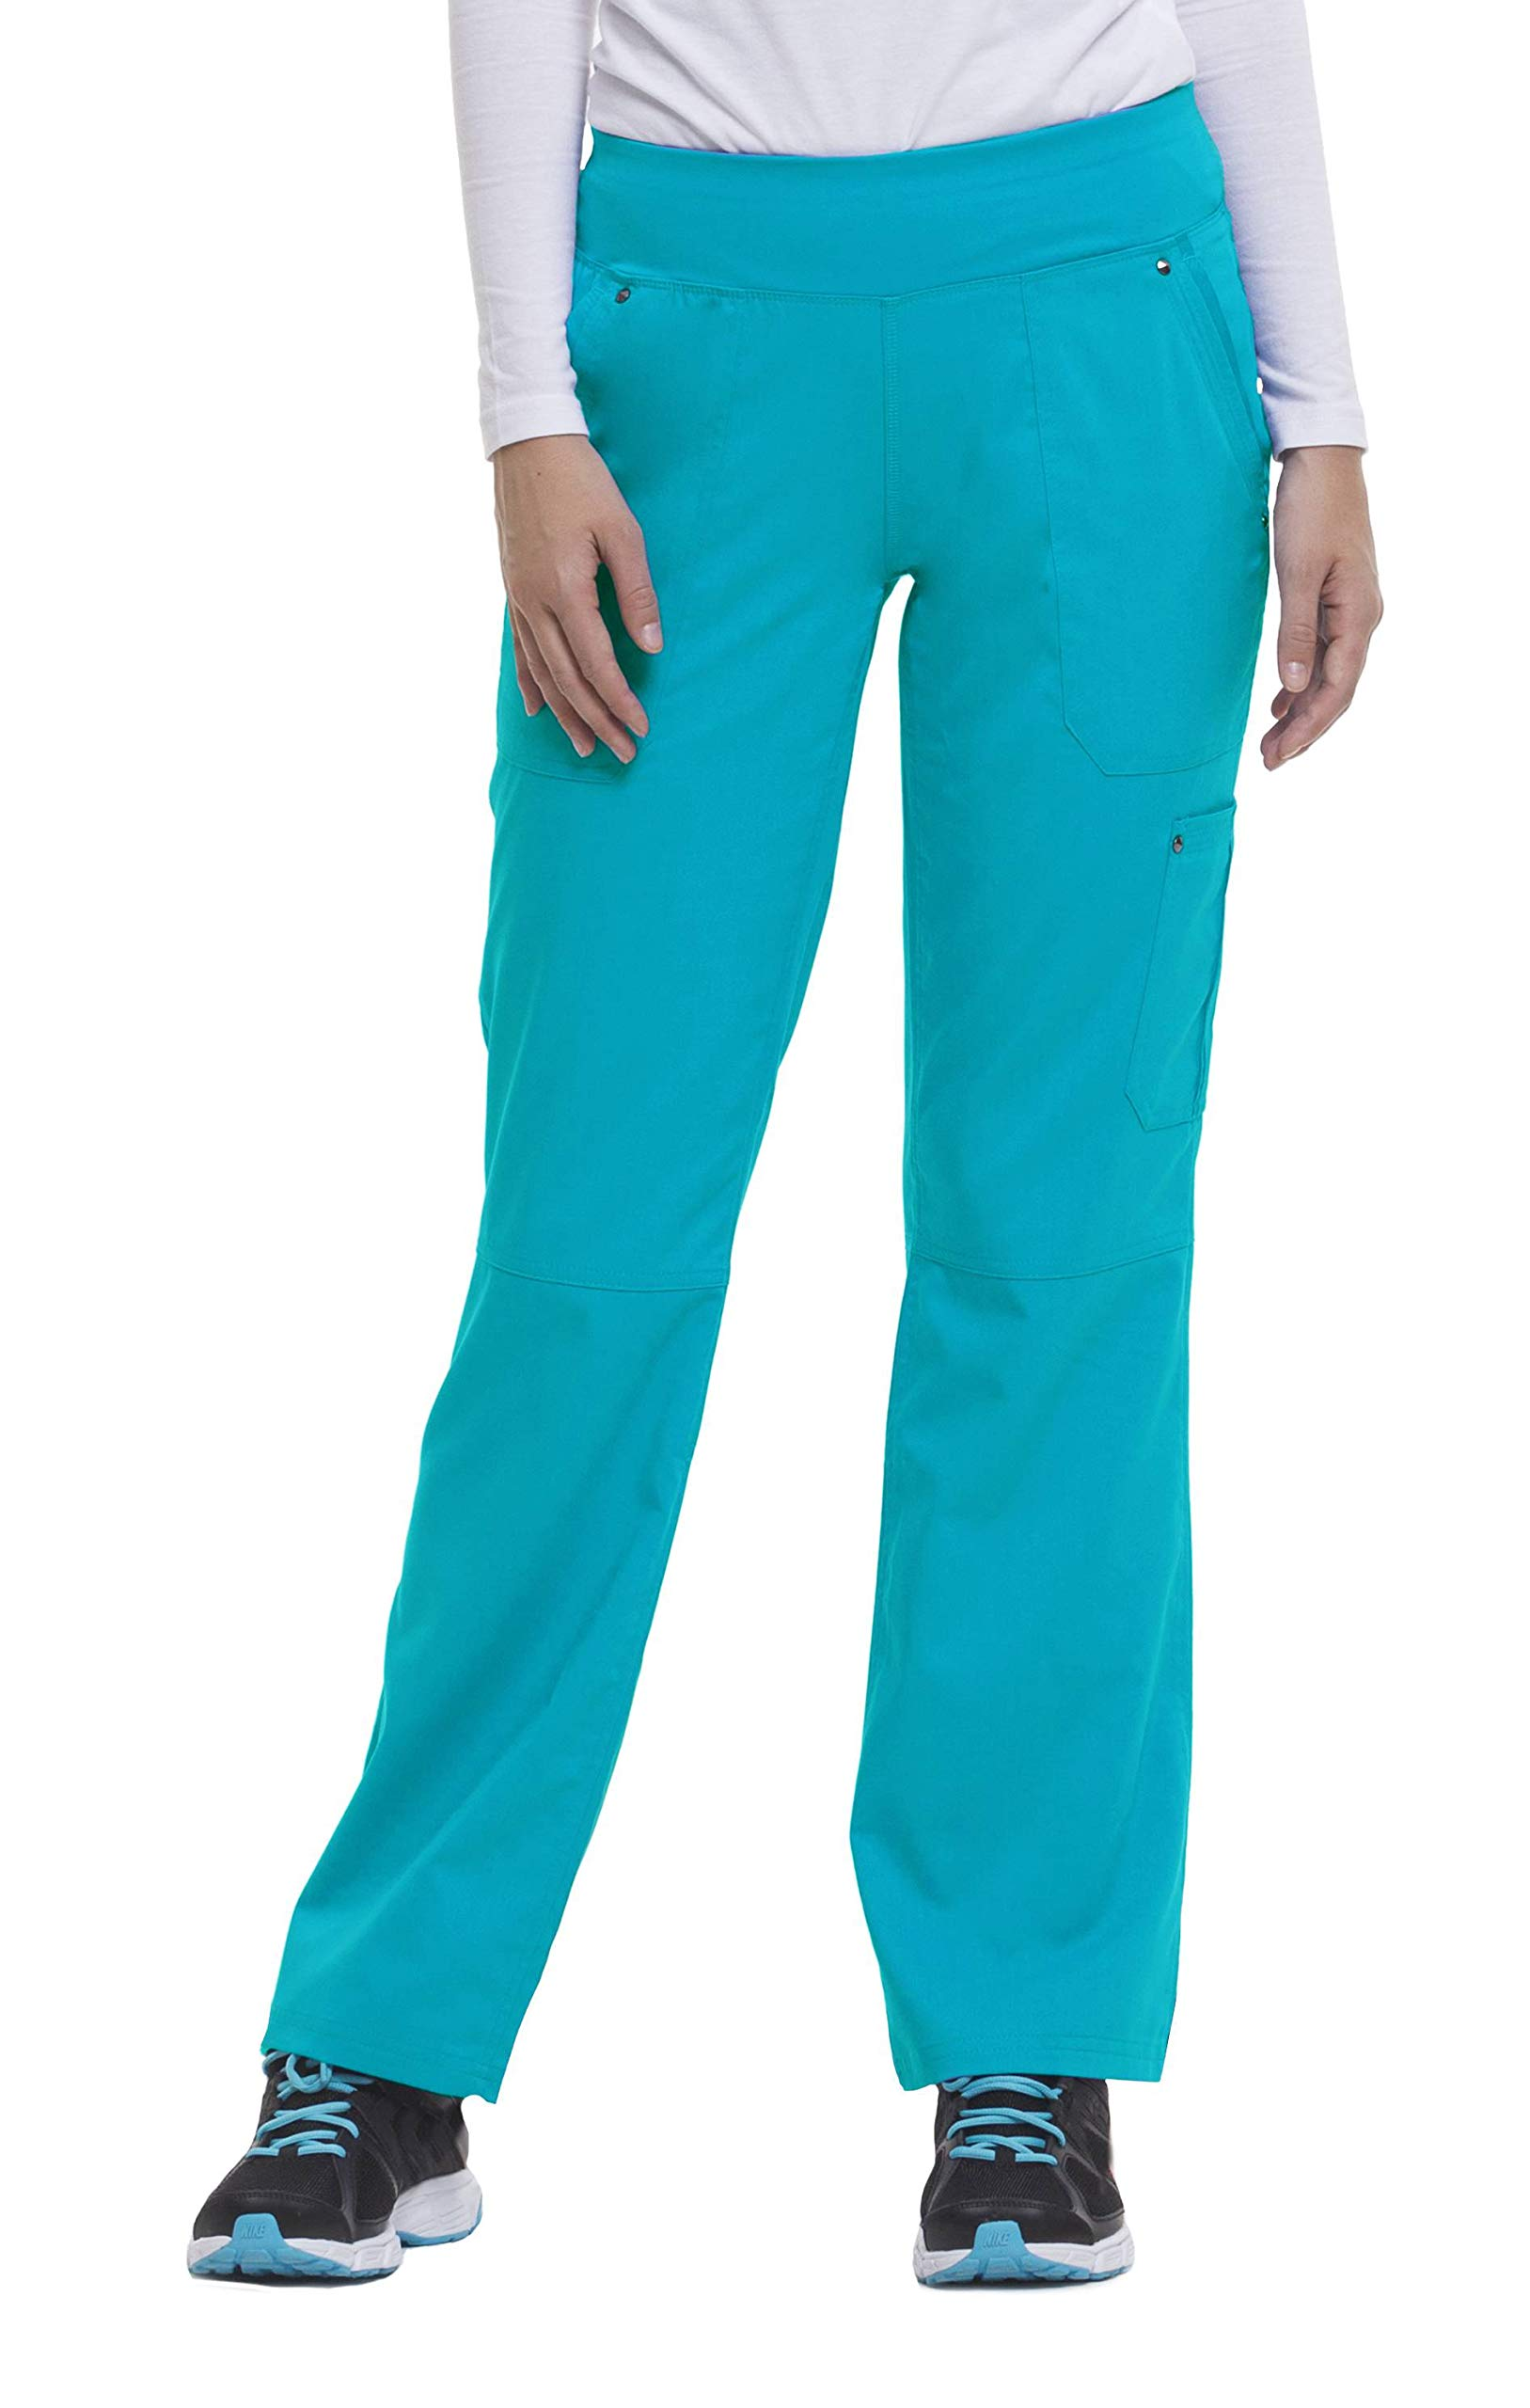 healing hands Purple Label Yoga Women's Tori 9133 5 Pocket Knit Waist Pant Teal- 2X-Large